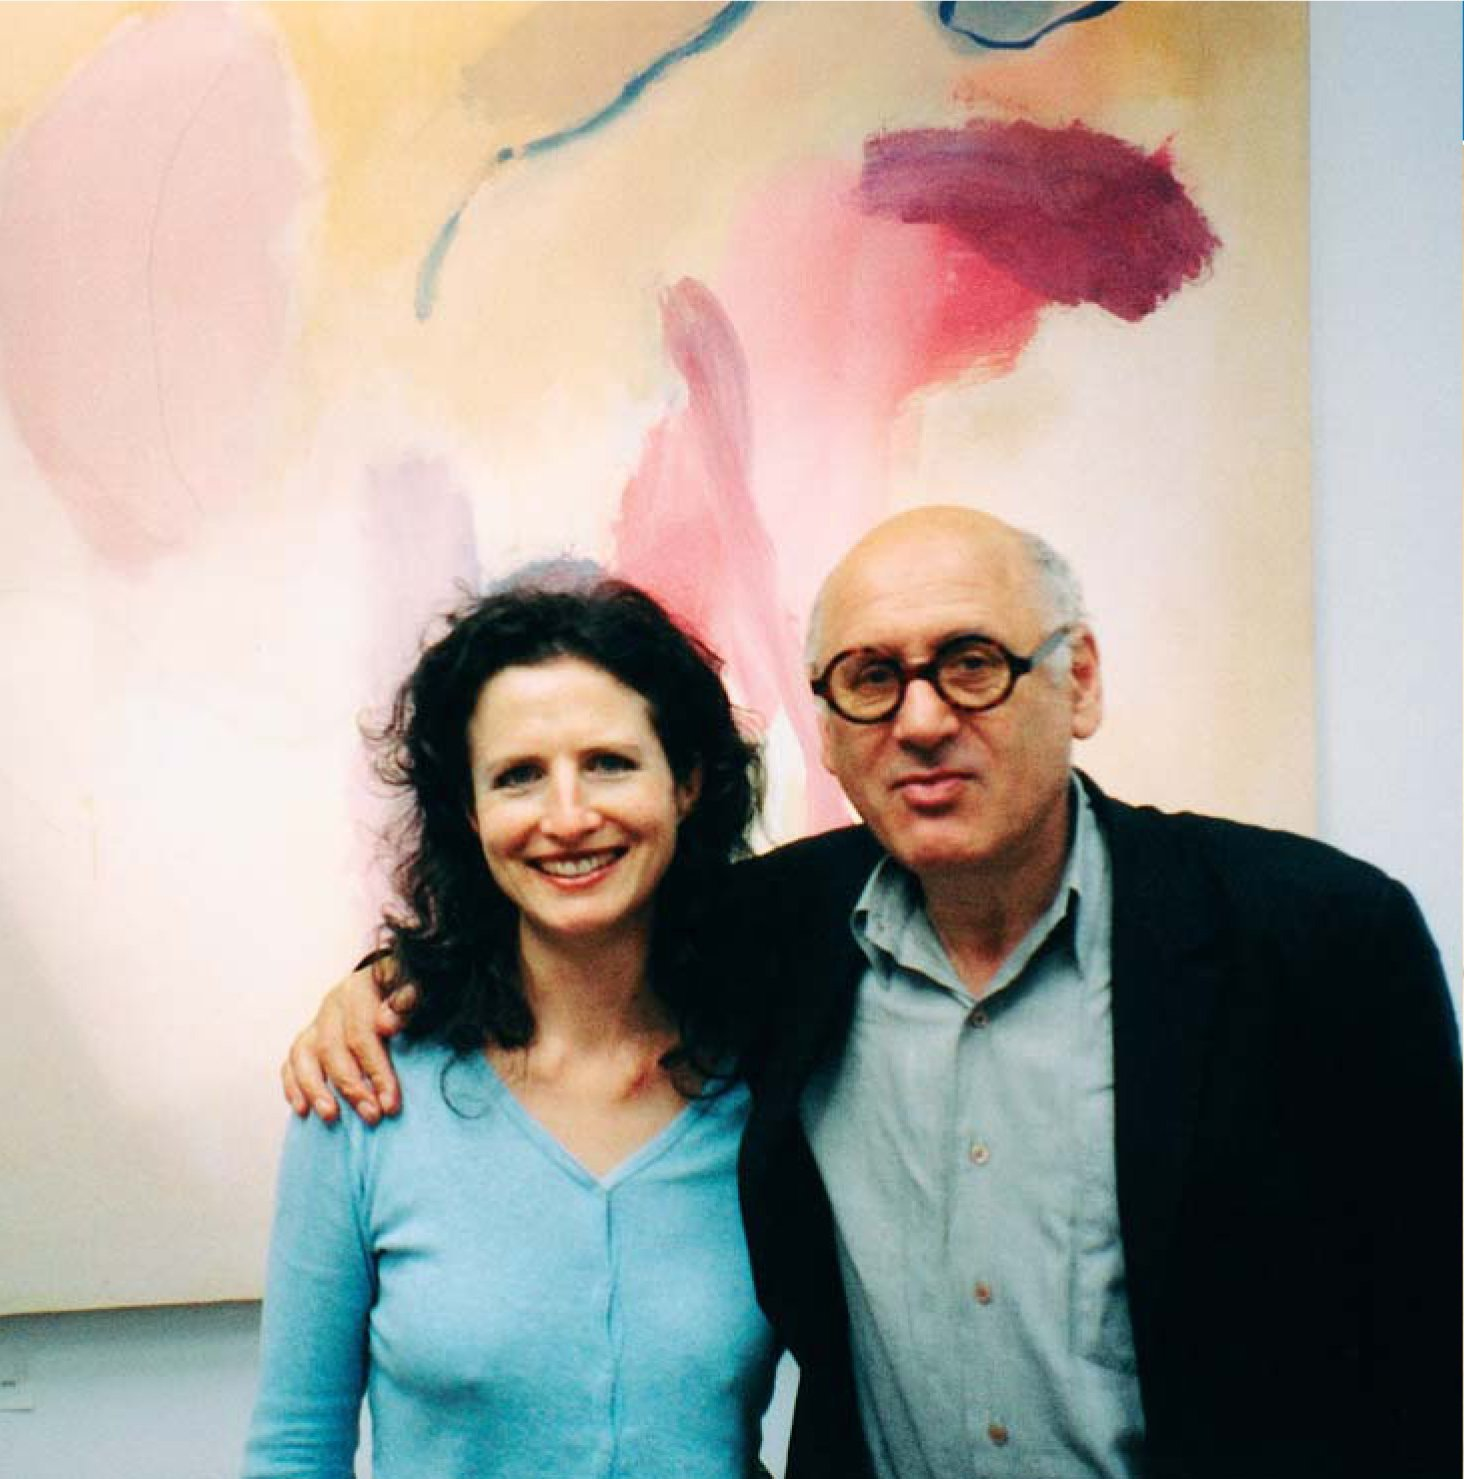 Madeleine and Michael Nyman